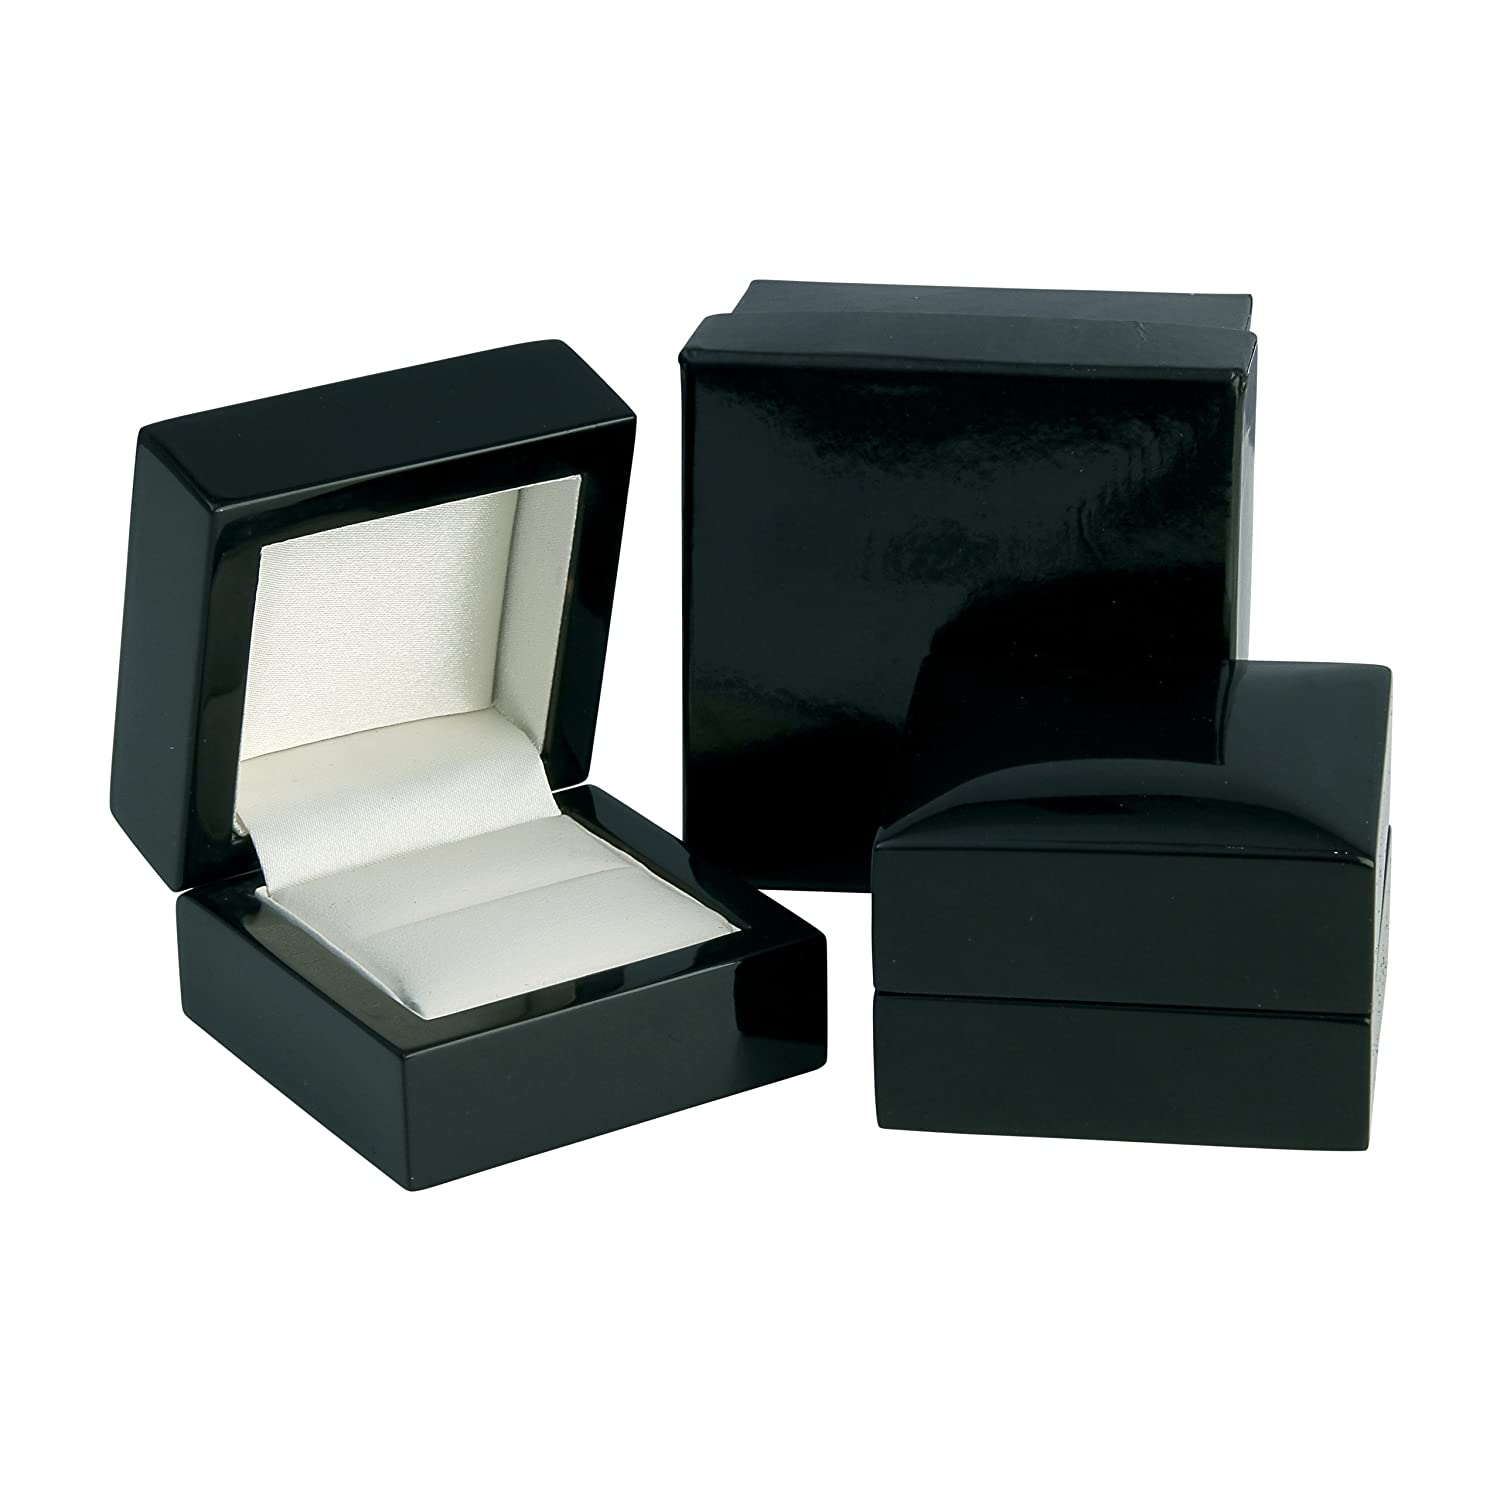 Luxury High Gloss Wooden Ring Box - Black Wood Amazon.co.uk Kitchen u0026 Home  sc 1 st  Amazon UK & Luxury High Gloss Wooden Ring Box - Black Wood: Amazon.co.uk ... Aboutintivar.Com